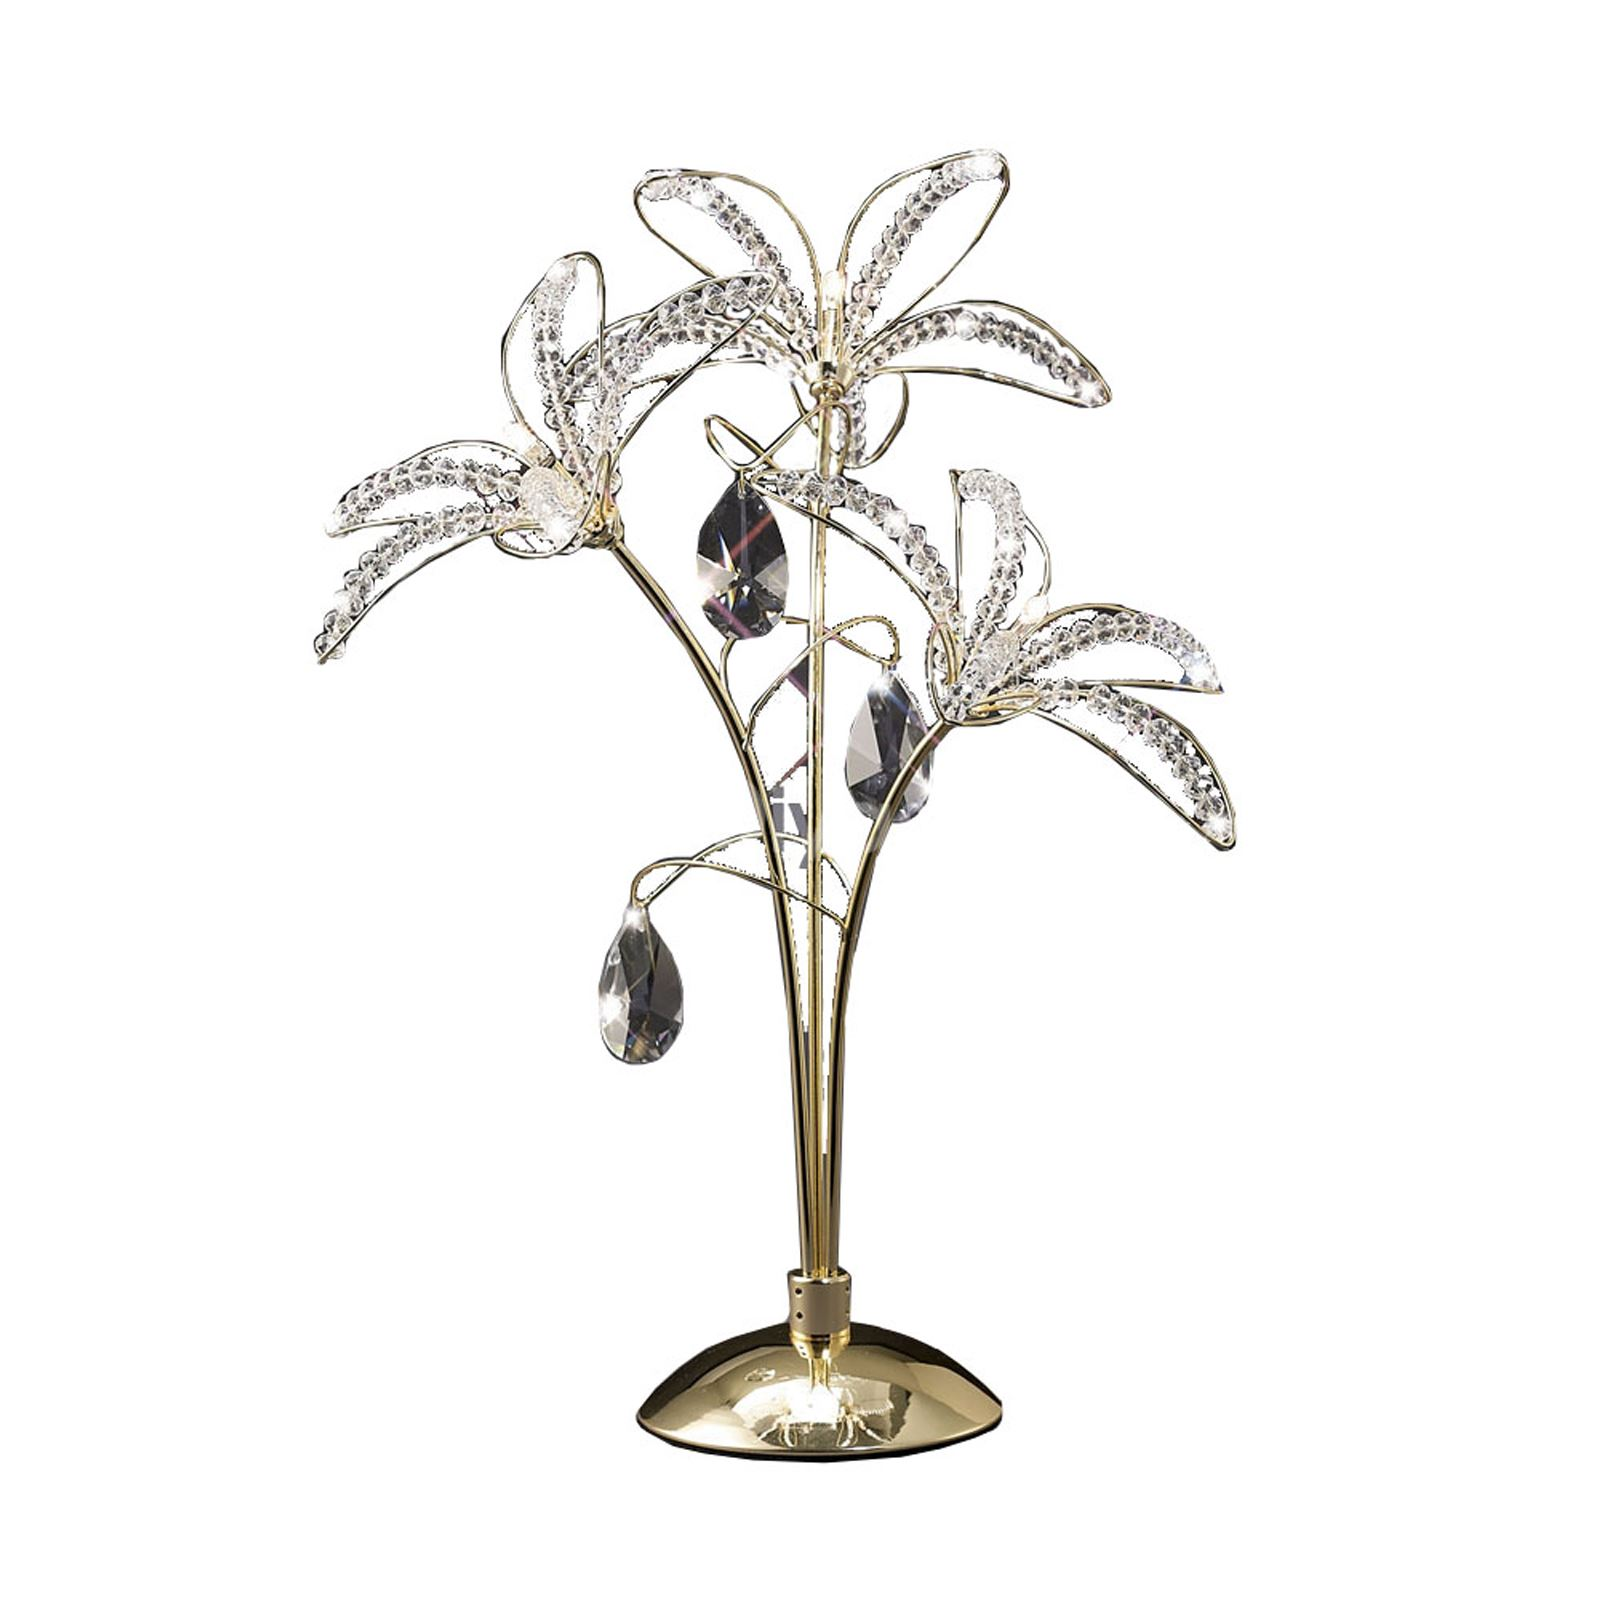 Stylish Table Lamp 3 Light Modern Home Decor French Gold/Crystal